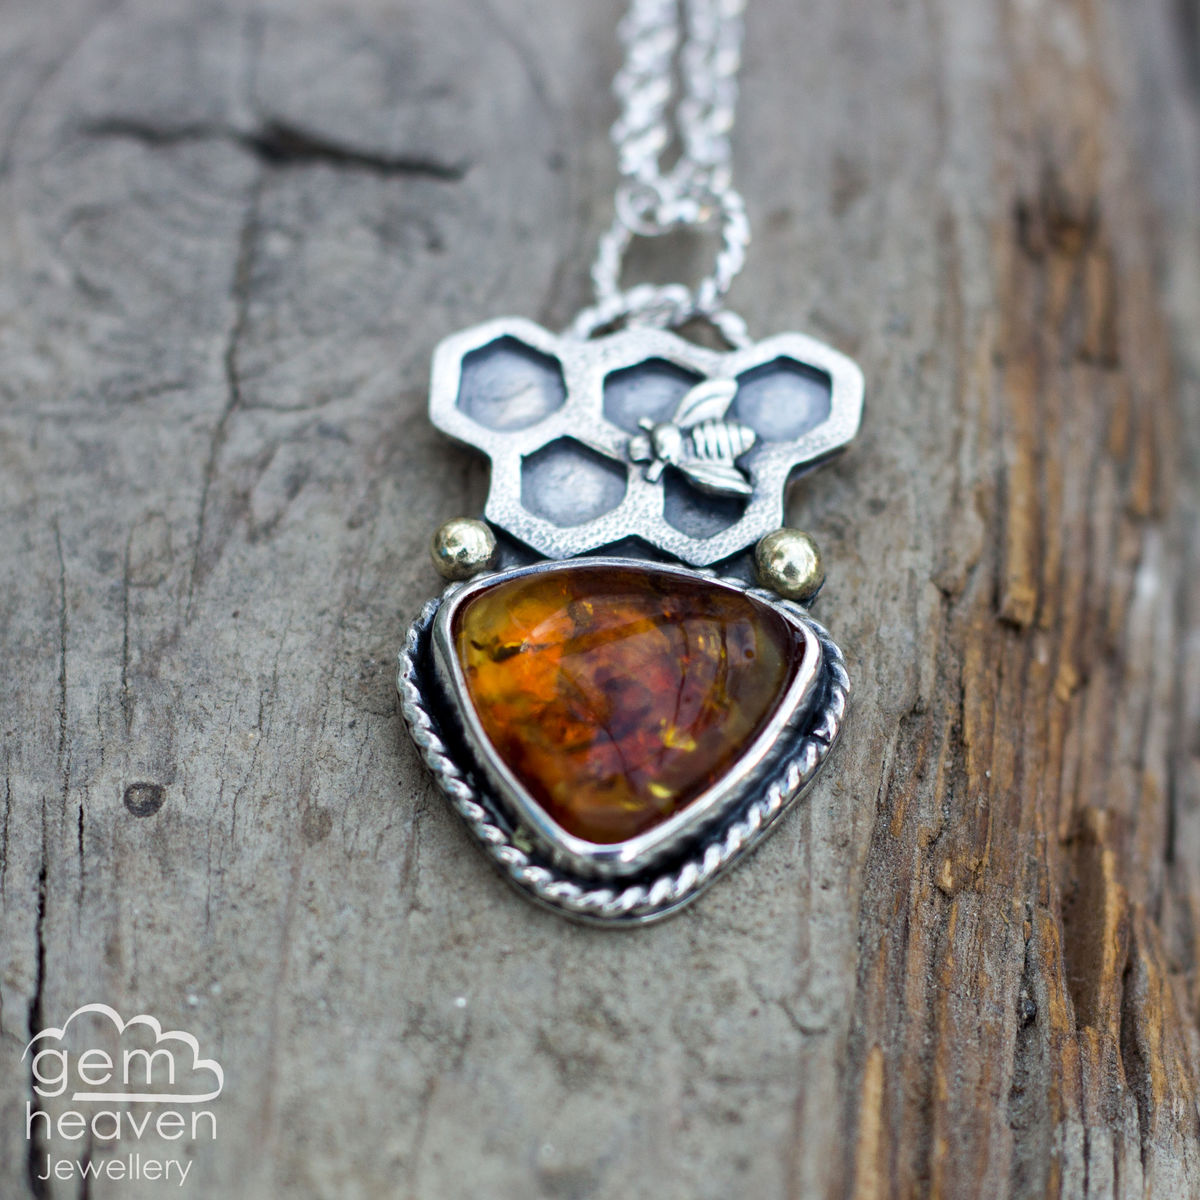 Keeper of Bees Necklace with Amber - product images  of